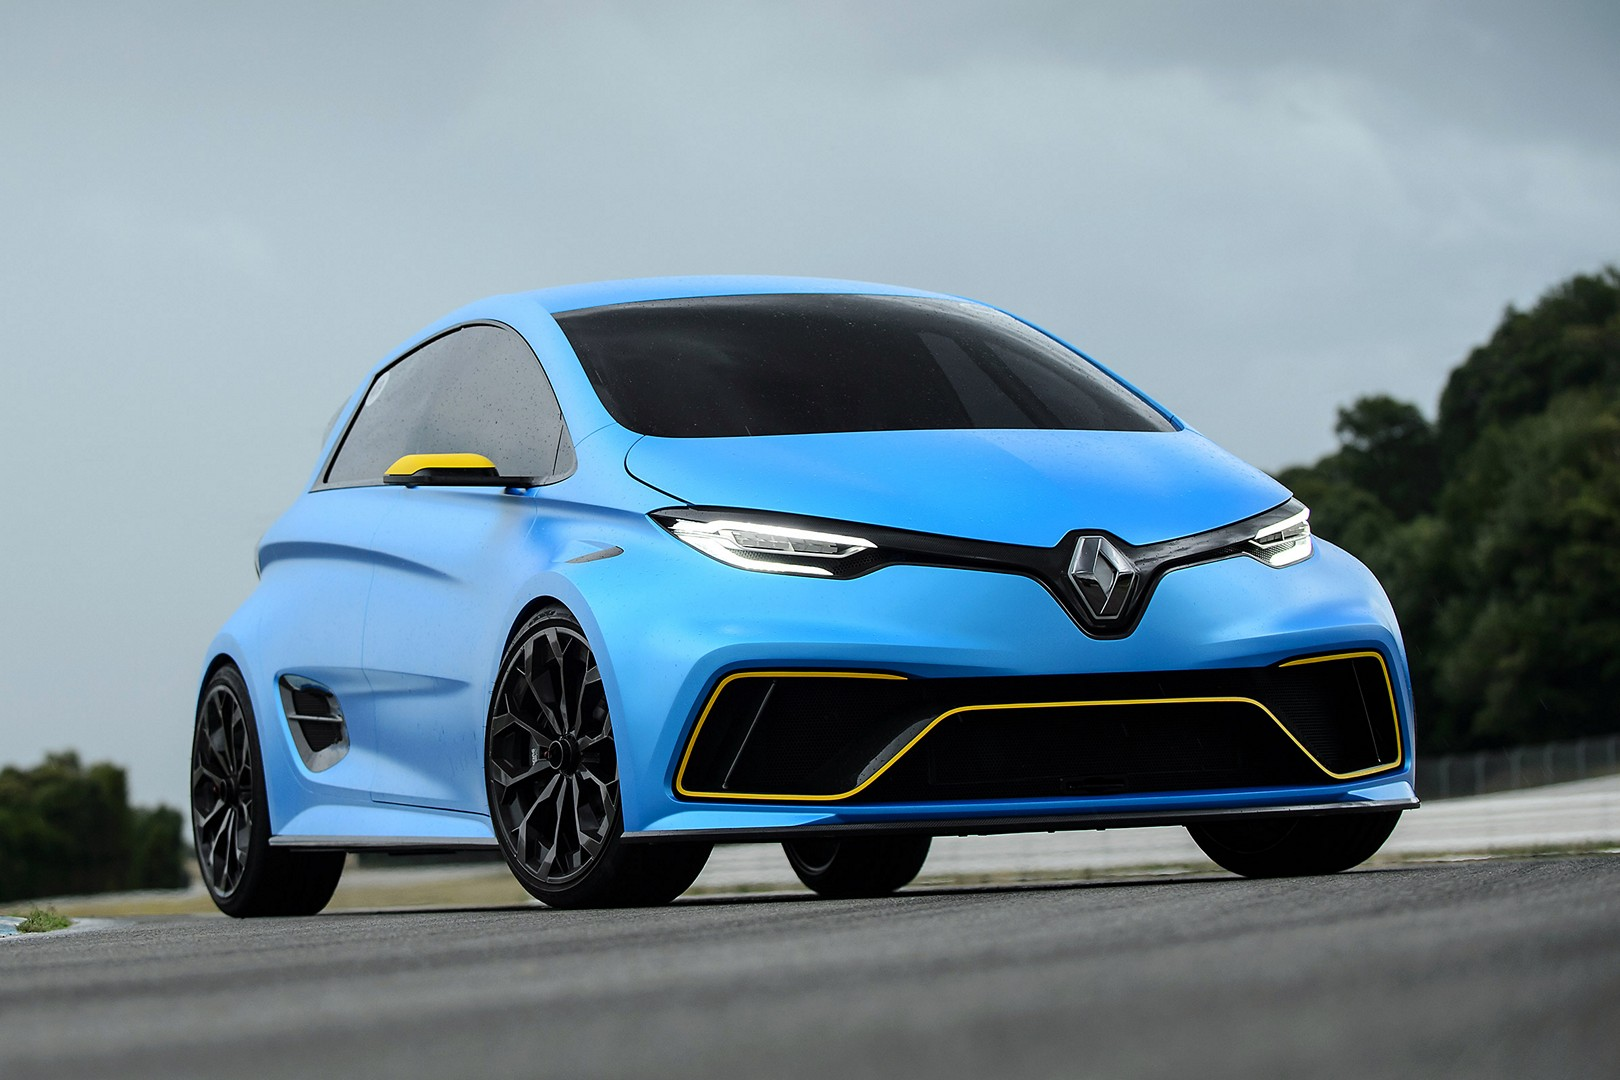 renault zoe e sport track reviews prove it 39 s not just a concept autoevolution. Black Bedroom Furniture Sets. Home Design Ideas